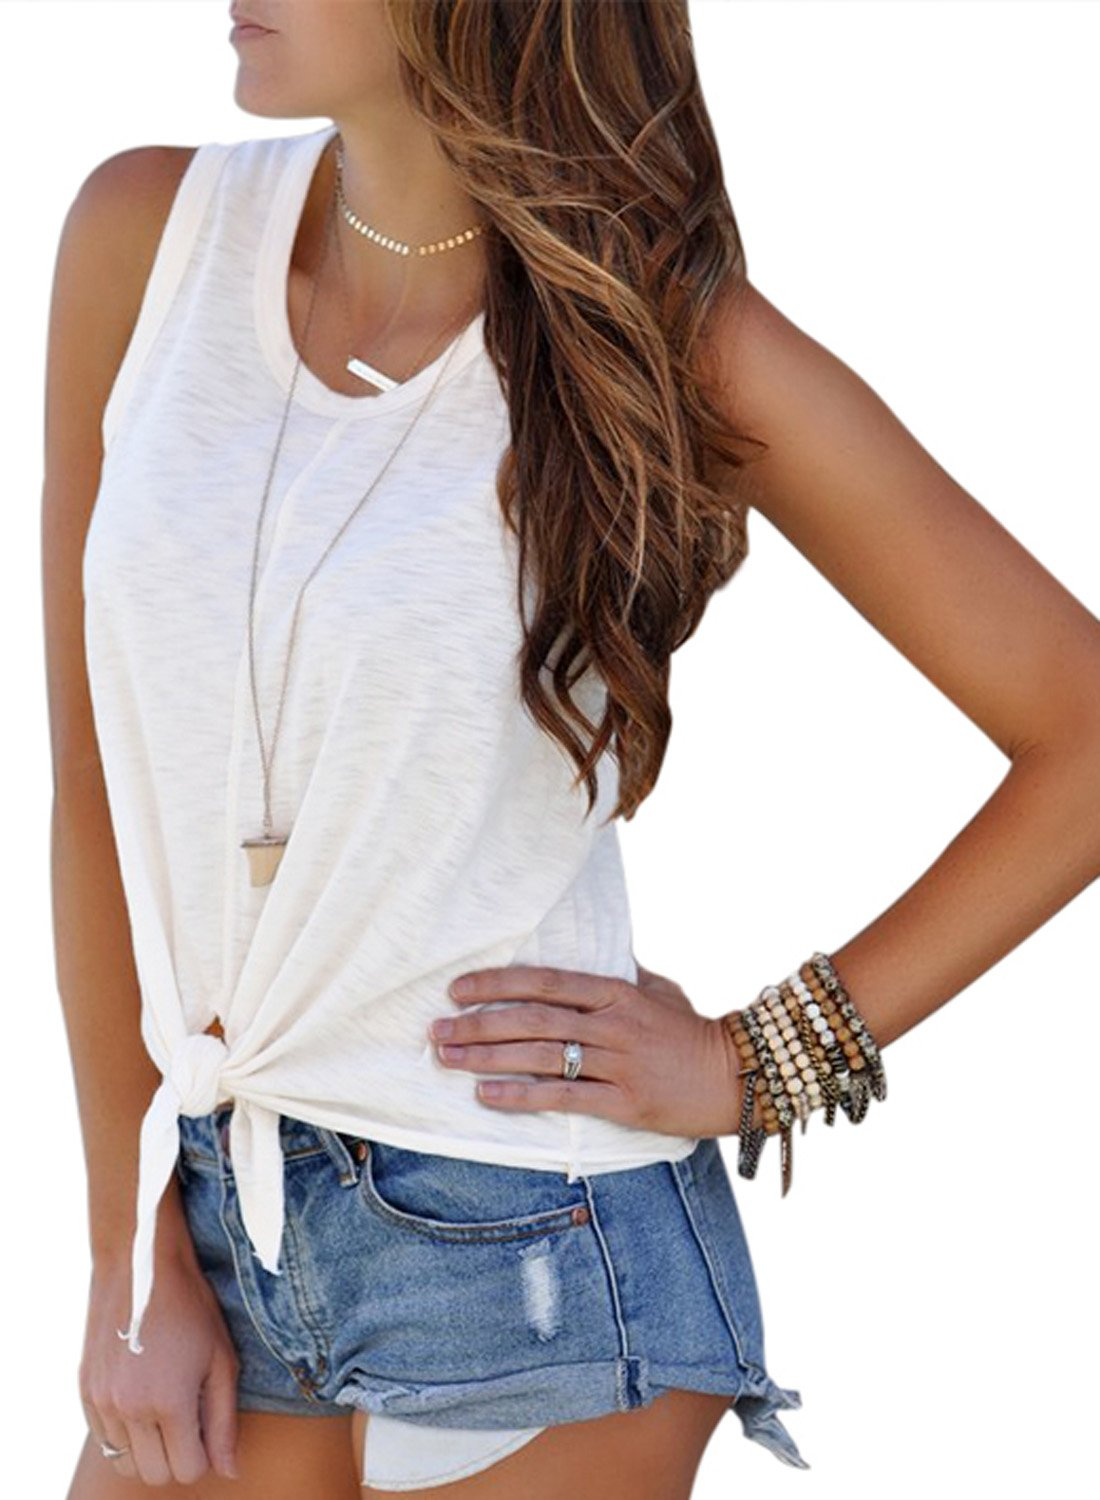 Astylish Womens 2018 Crew Neck Sleeveless Basic Loose T Shirts Casual Loose Tees Tops and Blouses White Medium Size 8 10